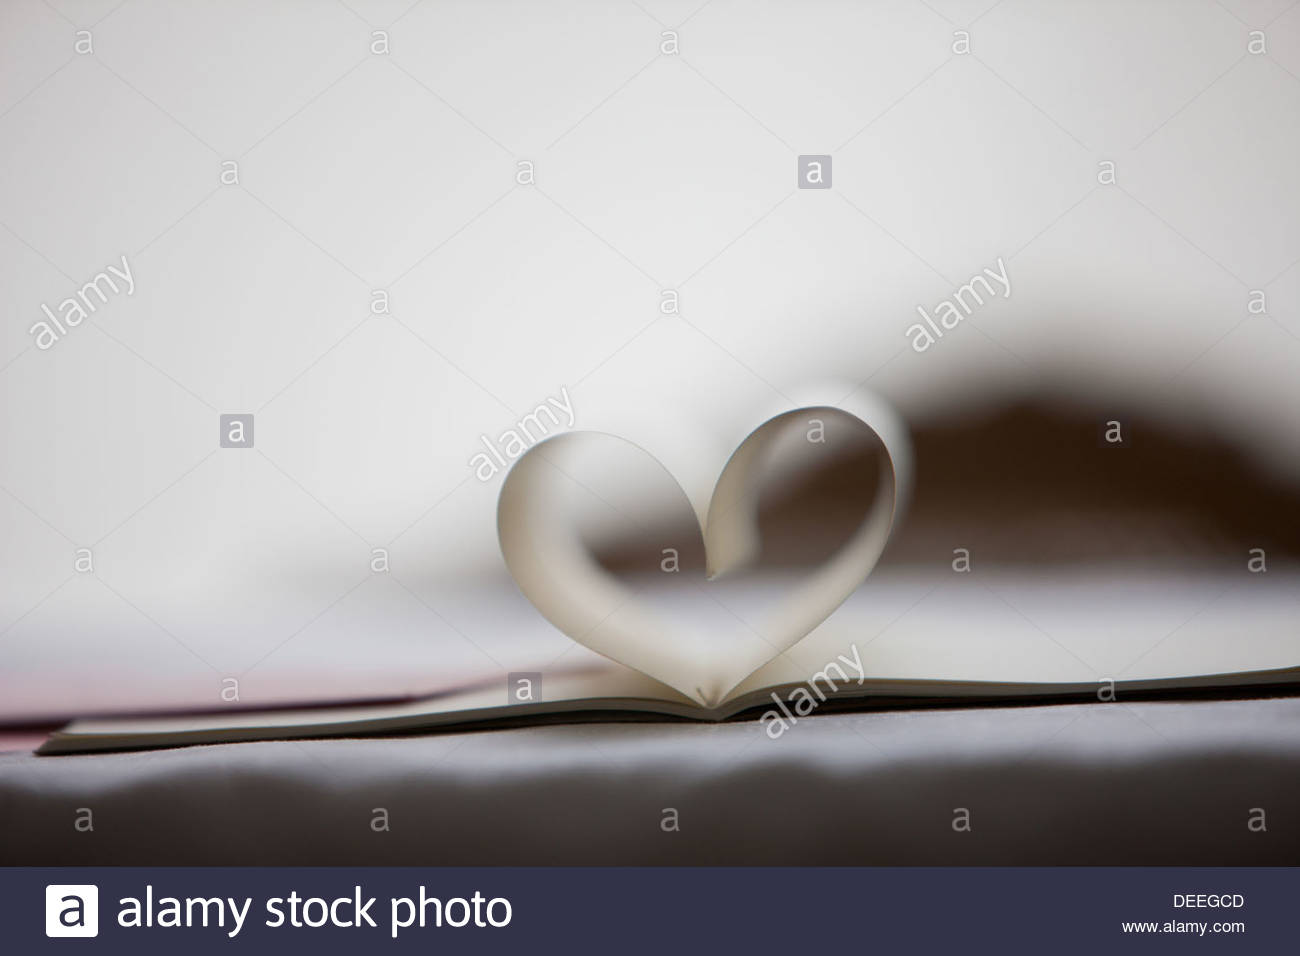 Close up of lipstick kiss on envelope and pages of notebook forming heart-shape - Stock Image